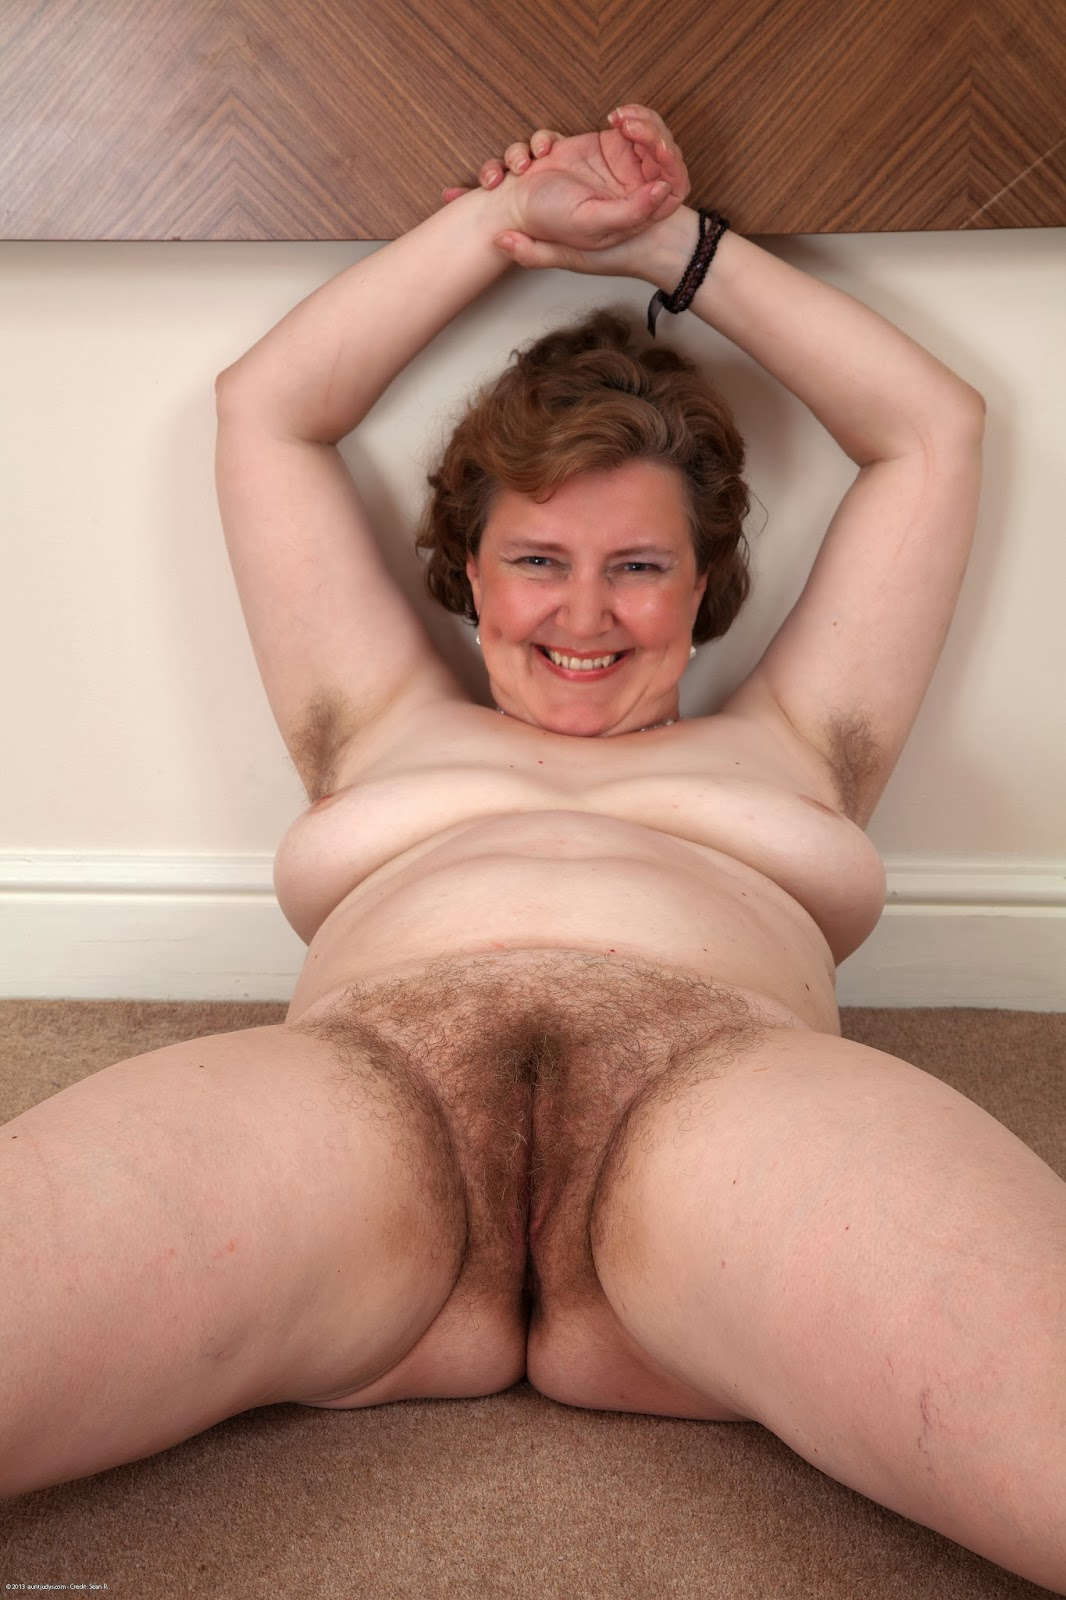 Sorry, that Curvy mature women hairy pussy very valuable